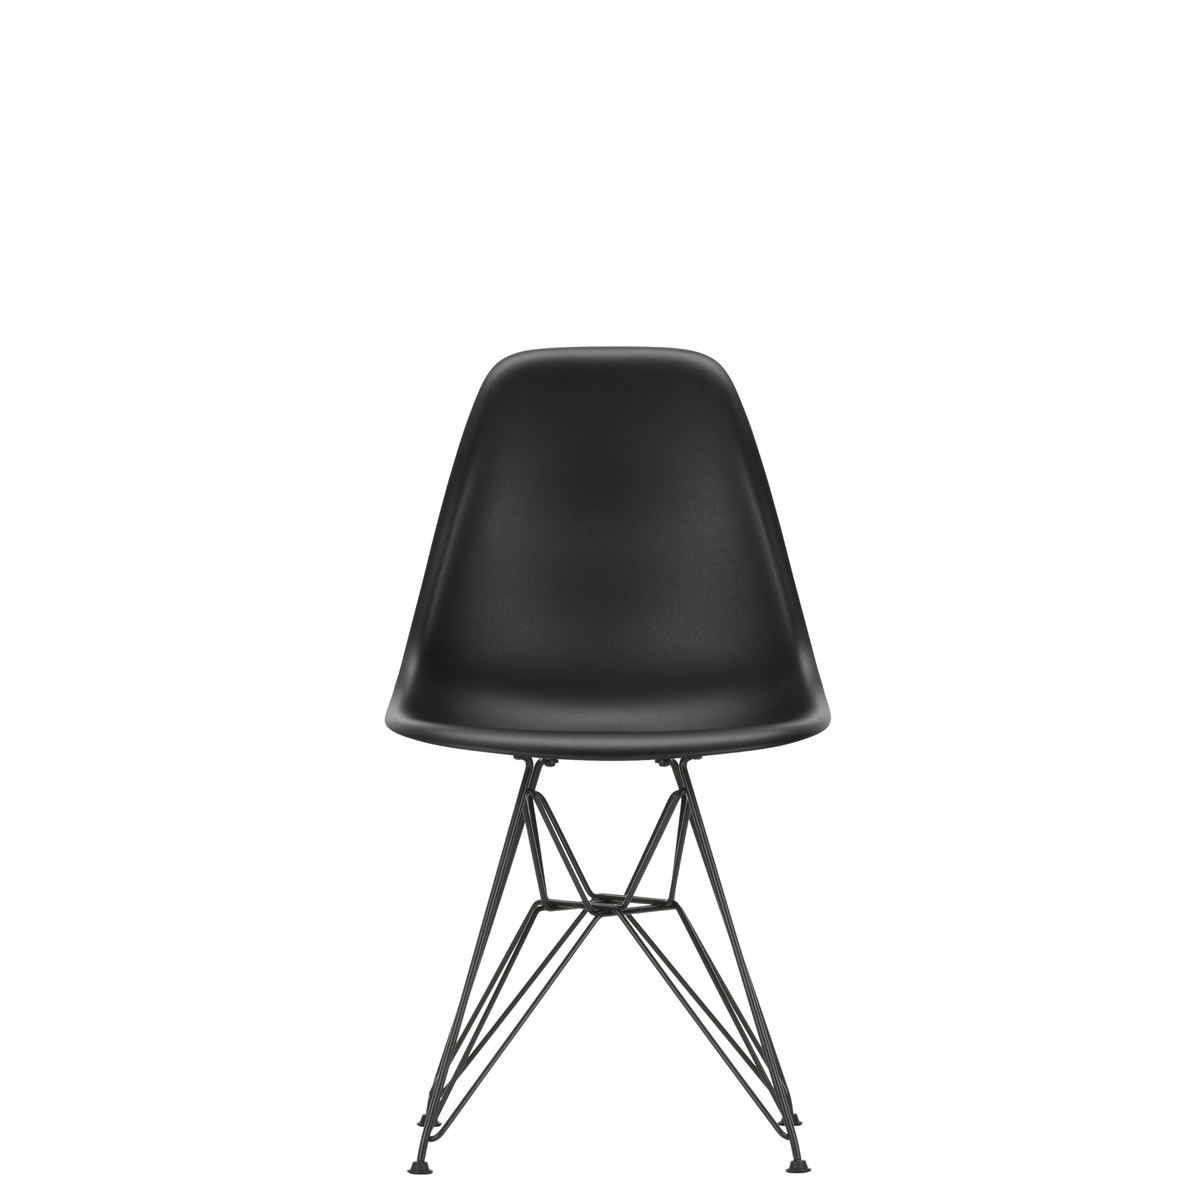 Vitra Eames Plastic Side Chair DSR Powder Coated for Outdoor Use Deep Black Shell Black Powdercoated Base